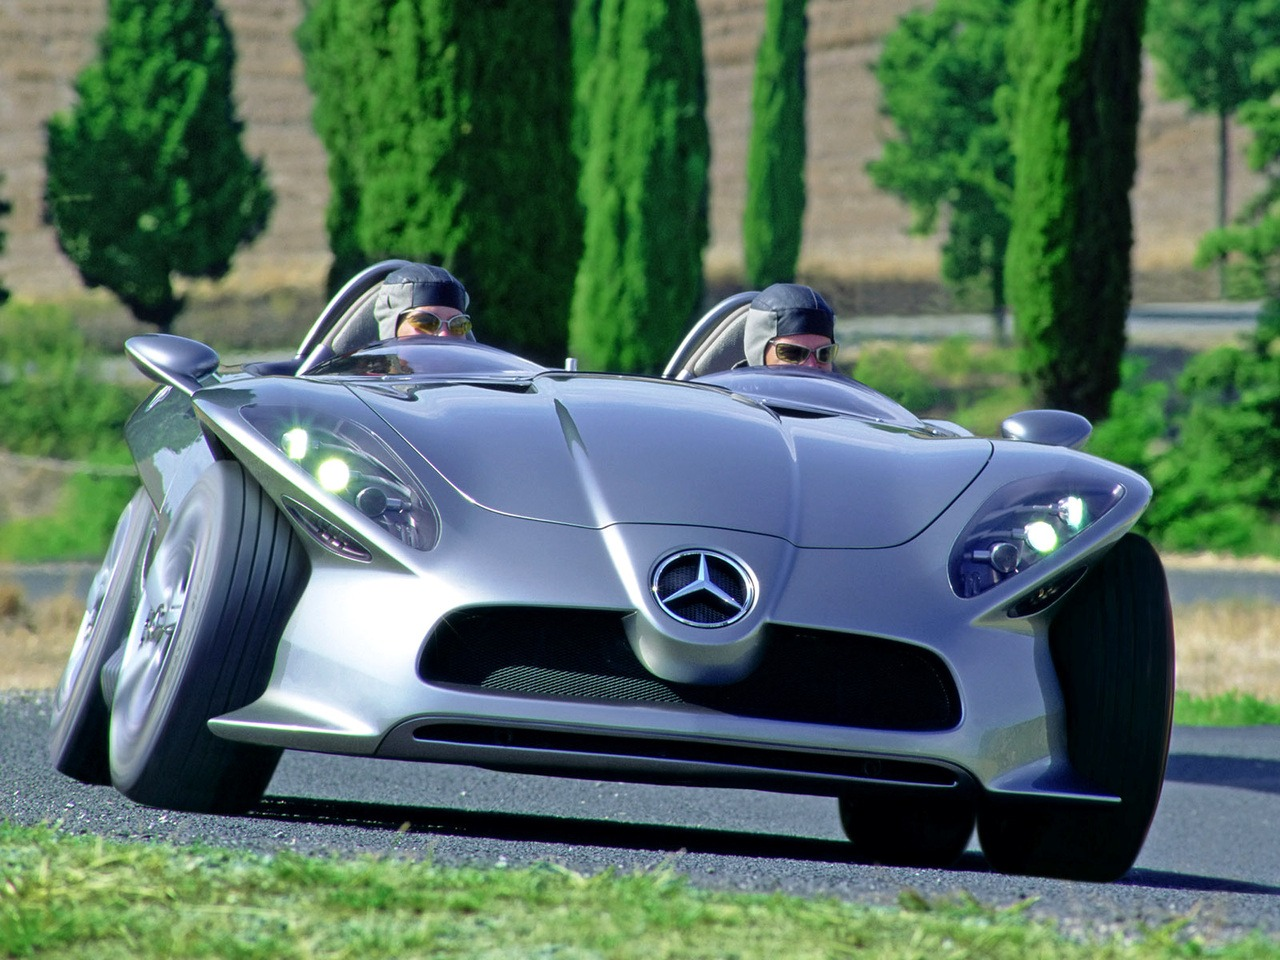 Mercedes Benz F400 Quot Carving Quot Concept 2001 Old Concept Cars